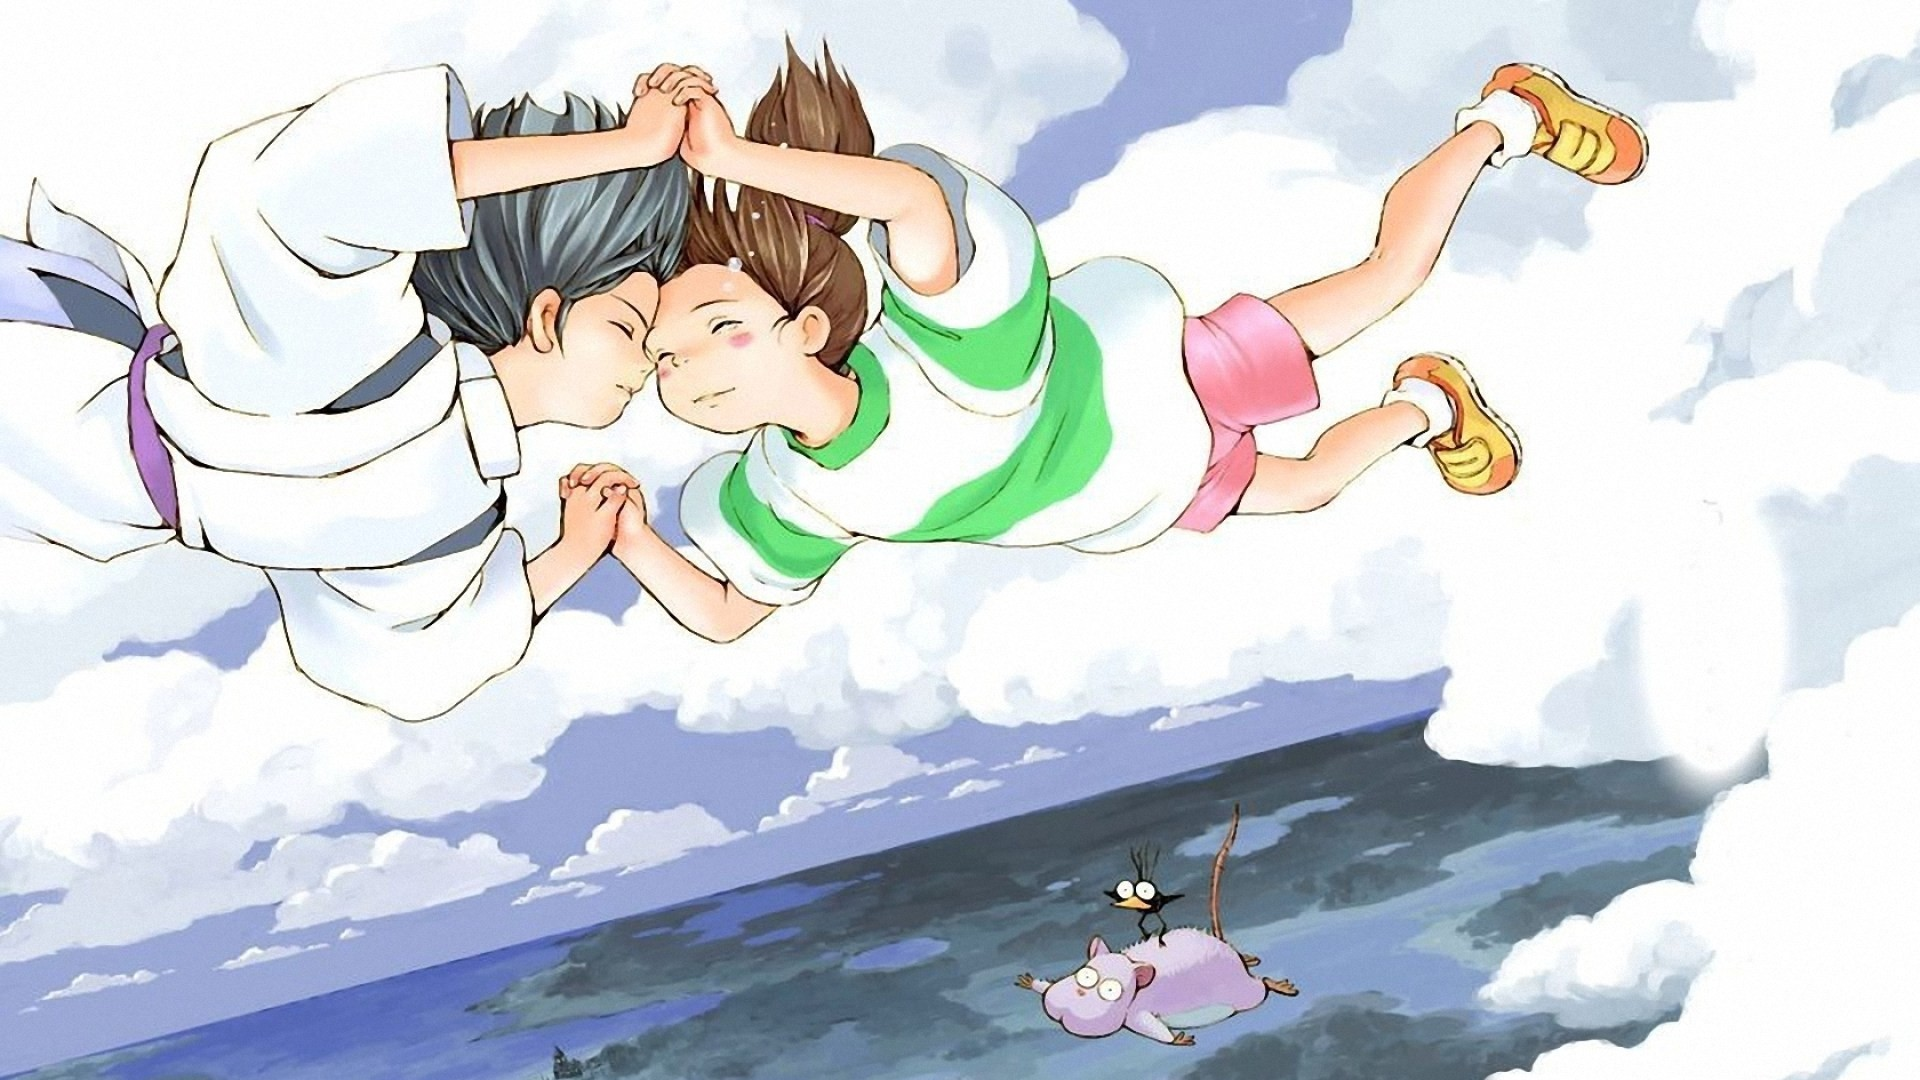 1920x1080 Studio Ghibli Spirited Away Haku (Spirited Away) Chihiro Ogino 1080p HD  Wallpaper Background